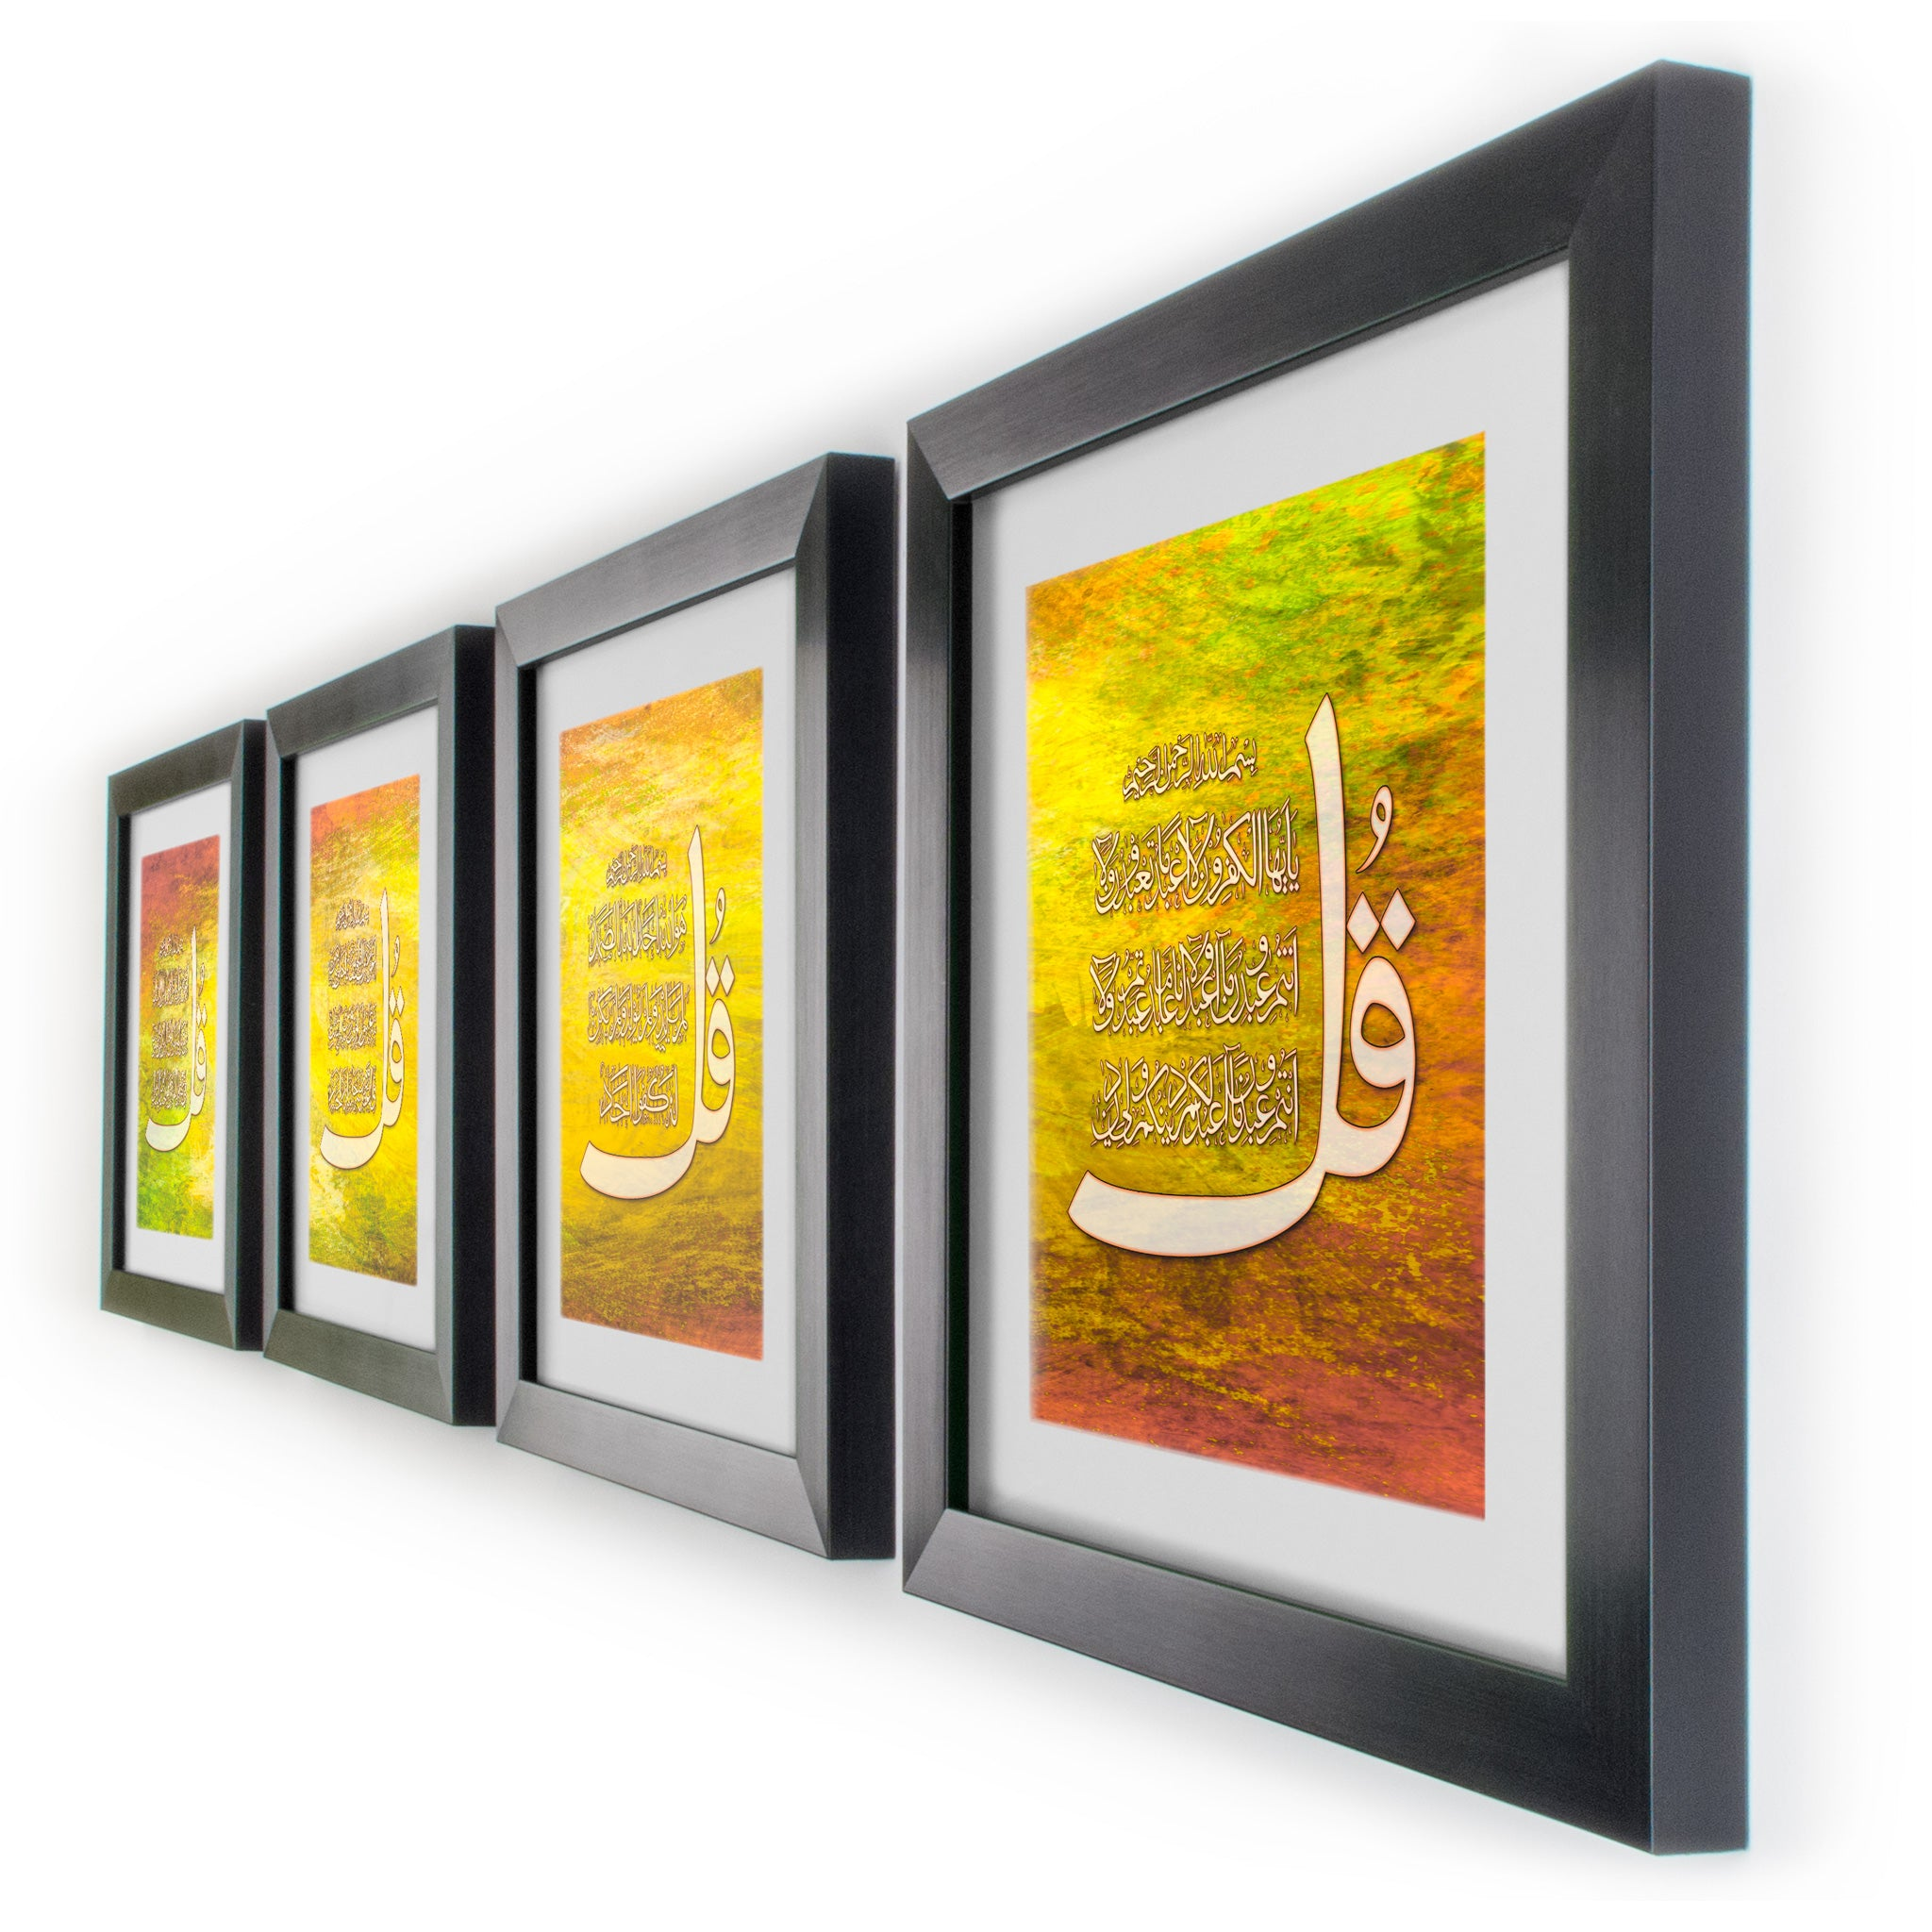 4 Qul 4 Piece Set - Autumn Leaf Design - Contemporary Black Framed ...